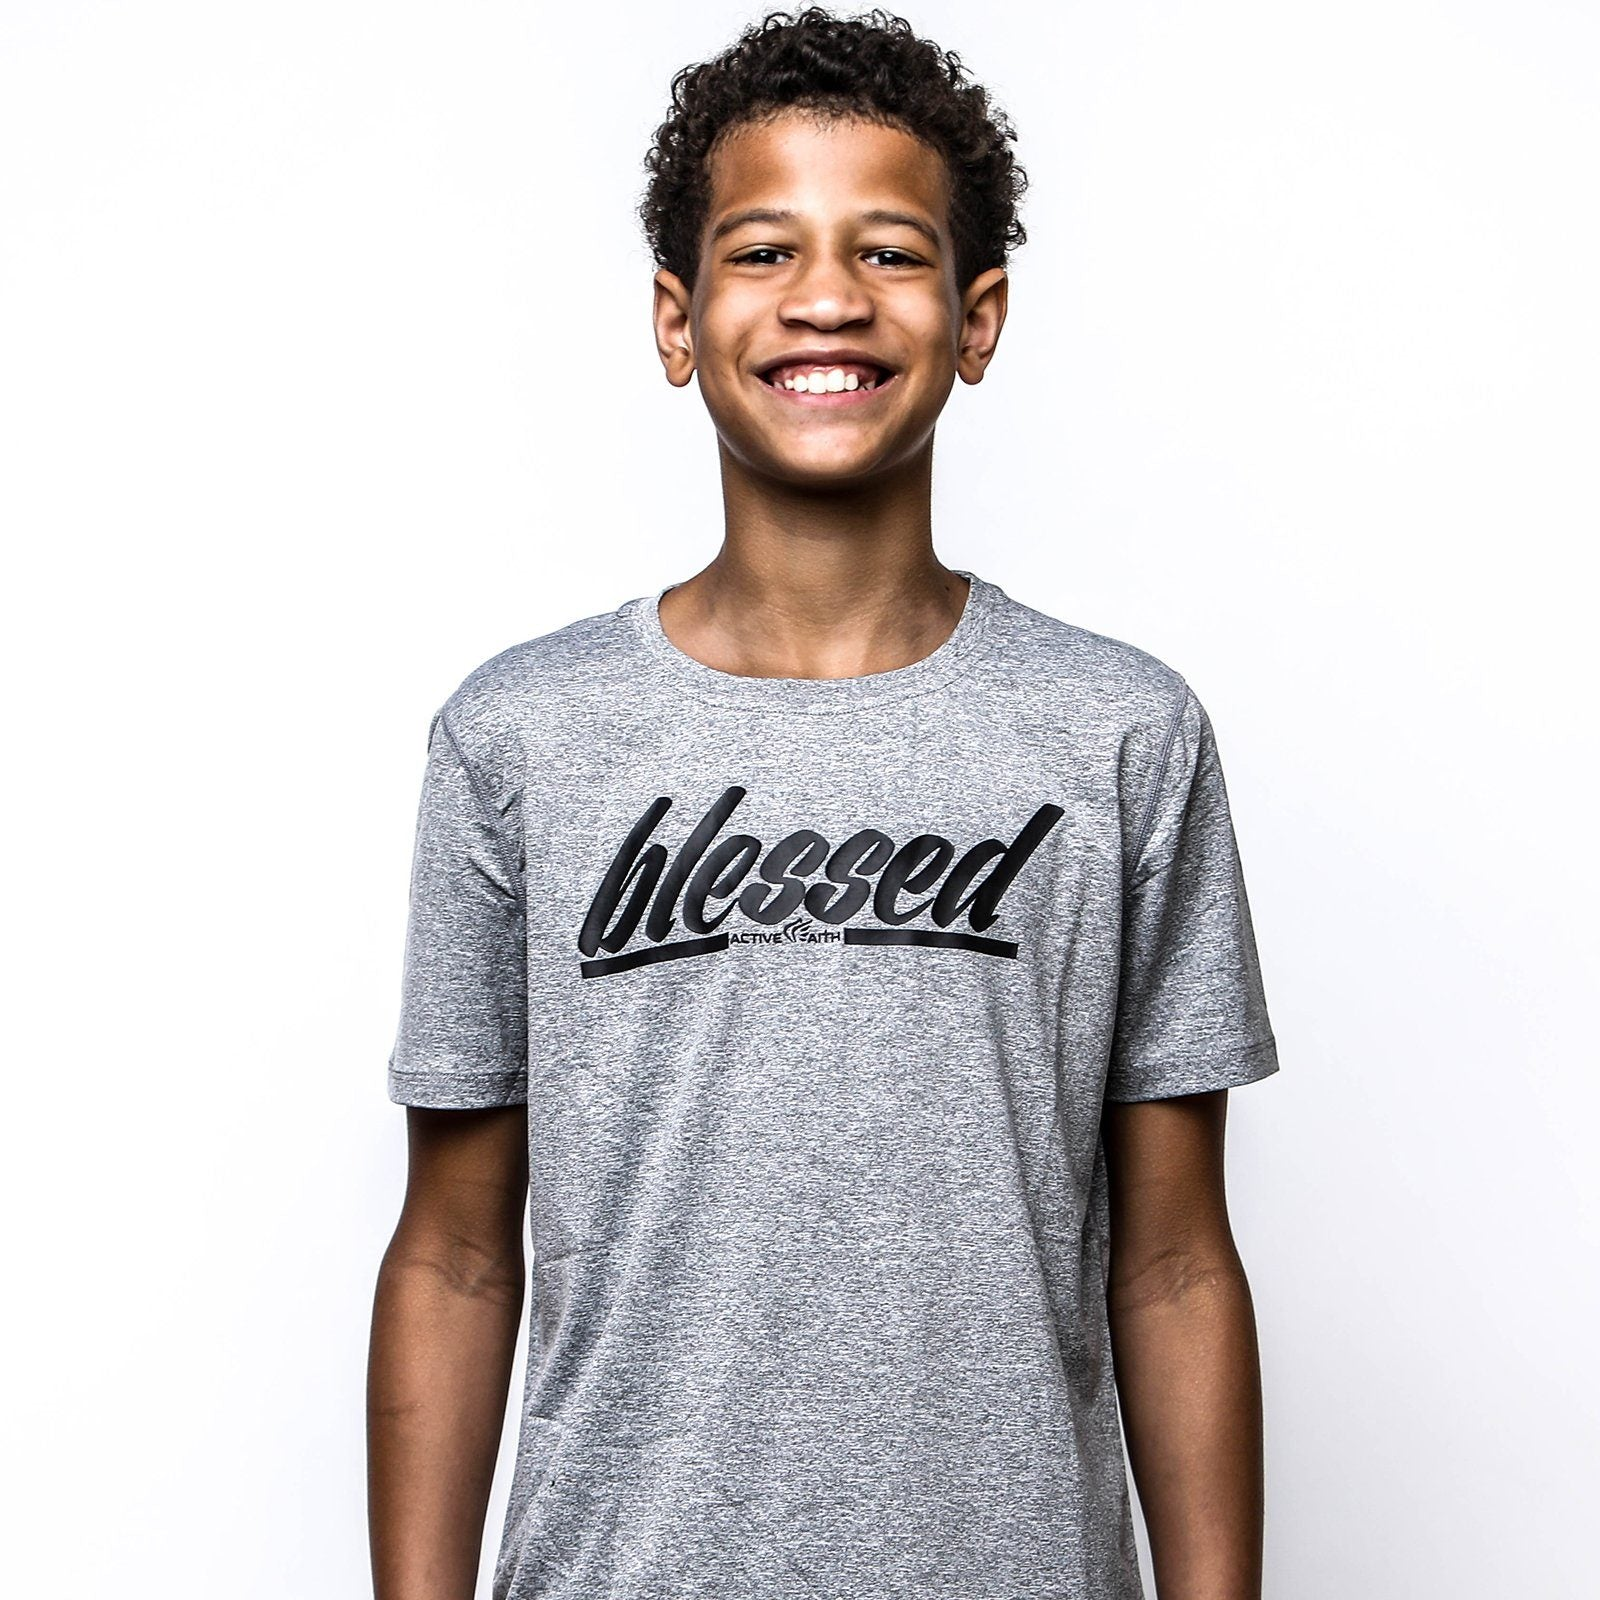 Youth BLESSED Performance Shirt